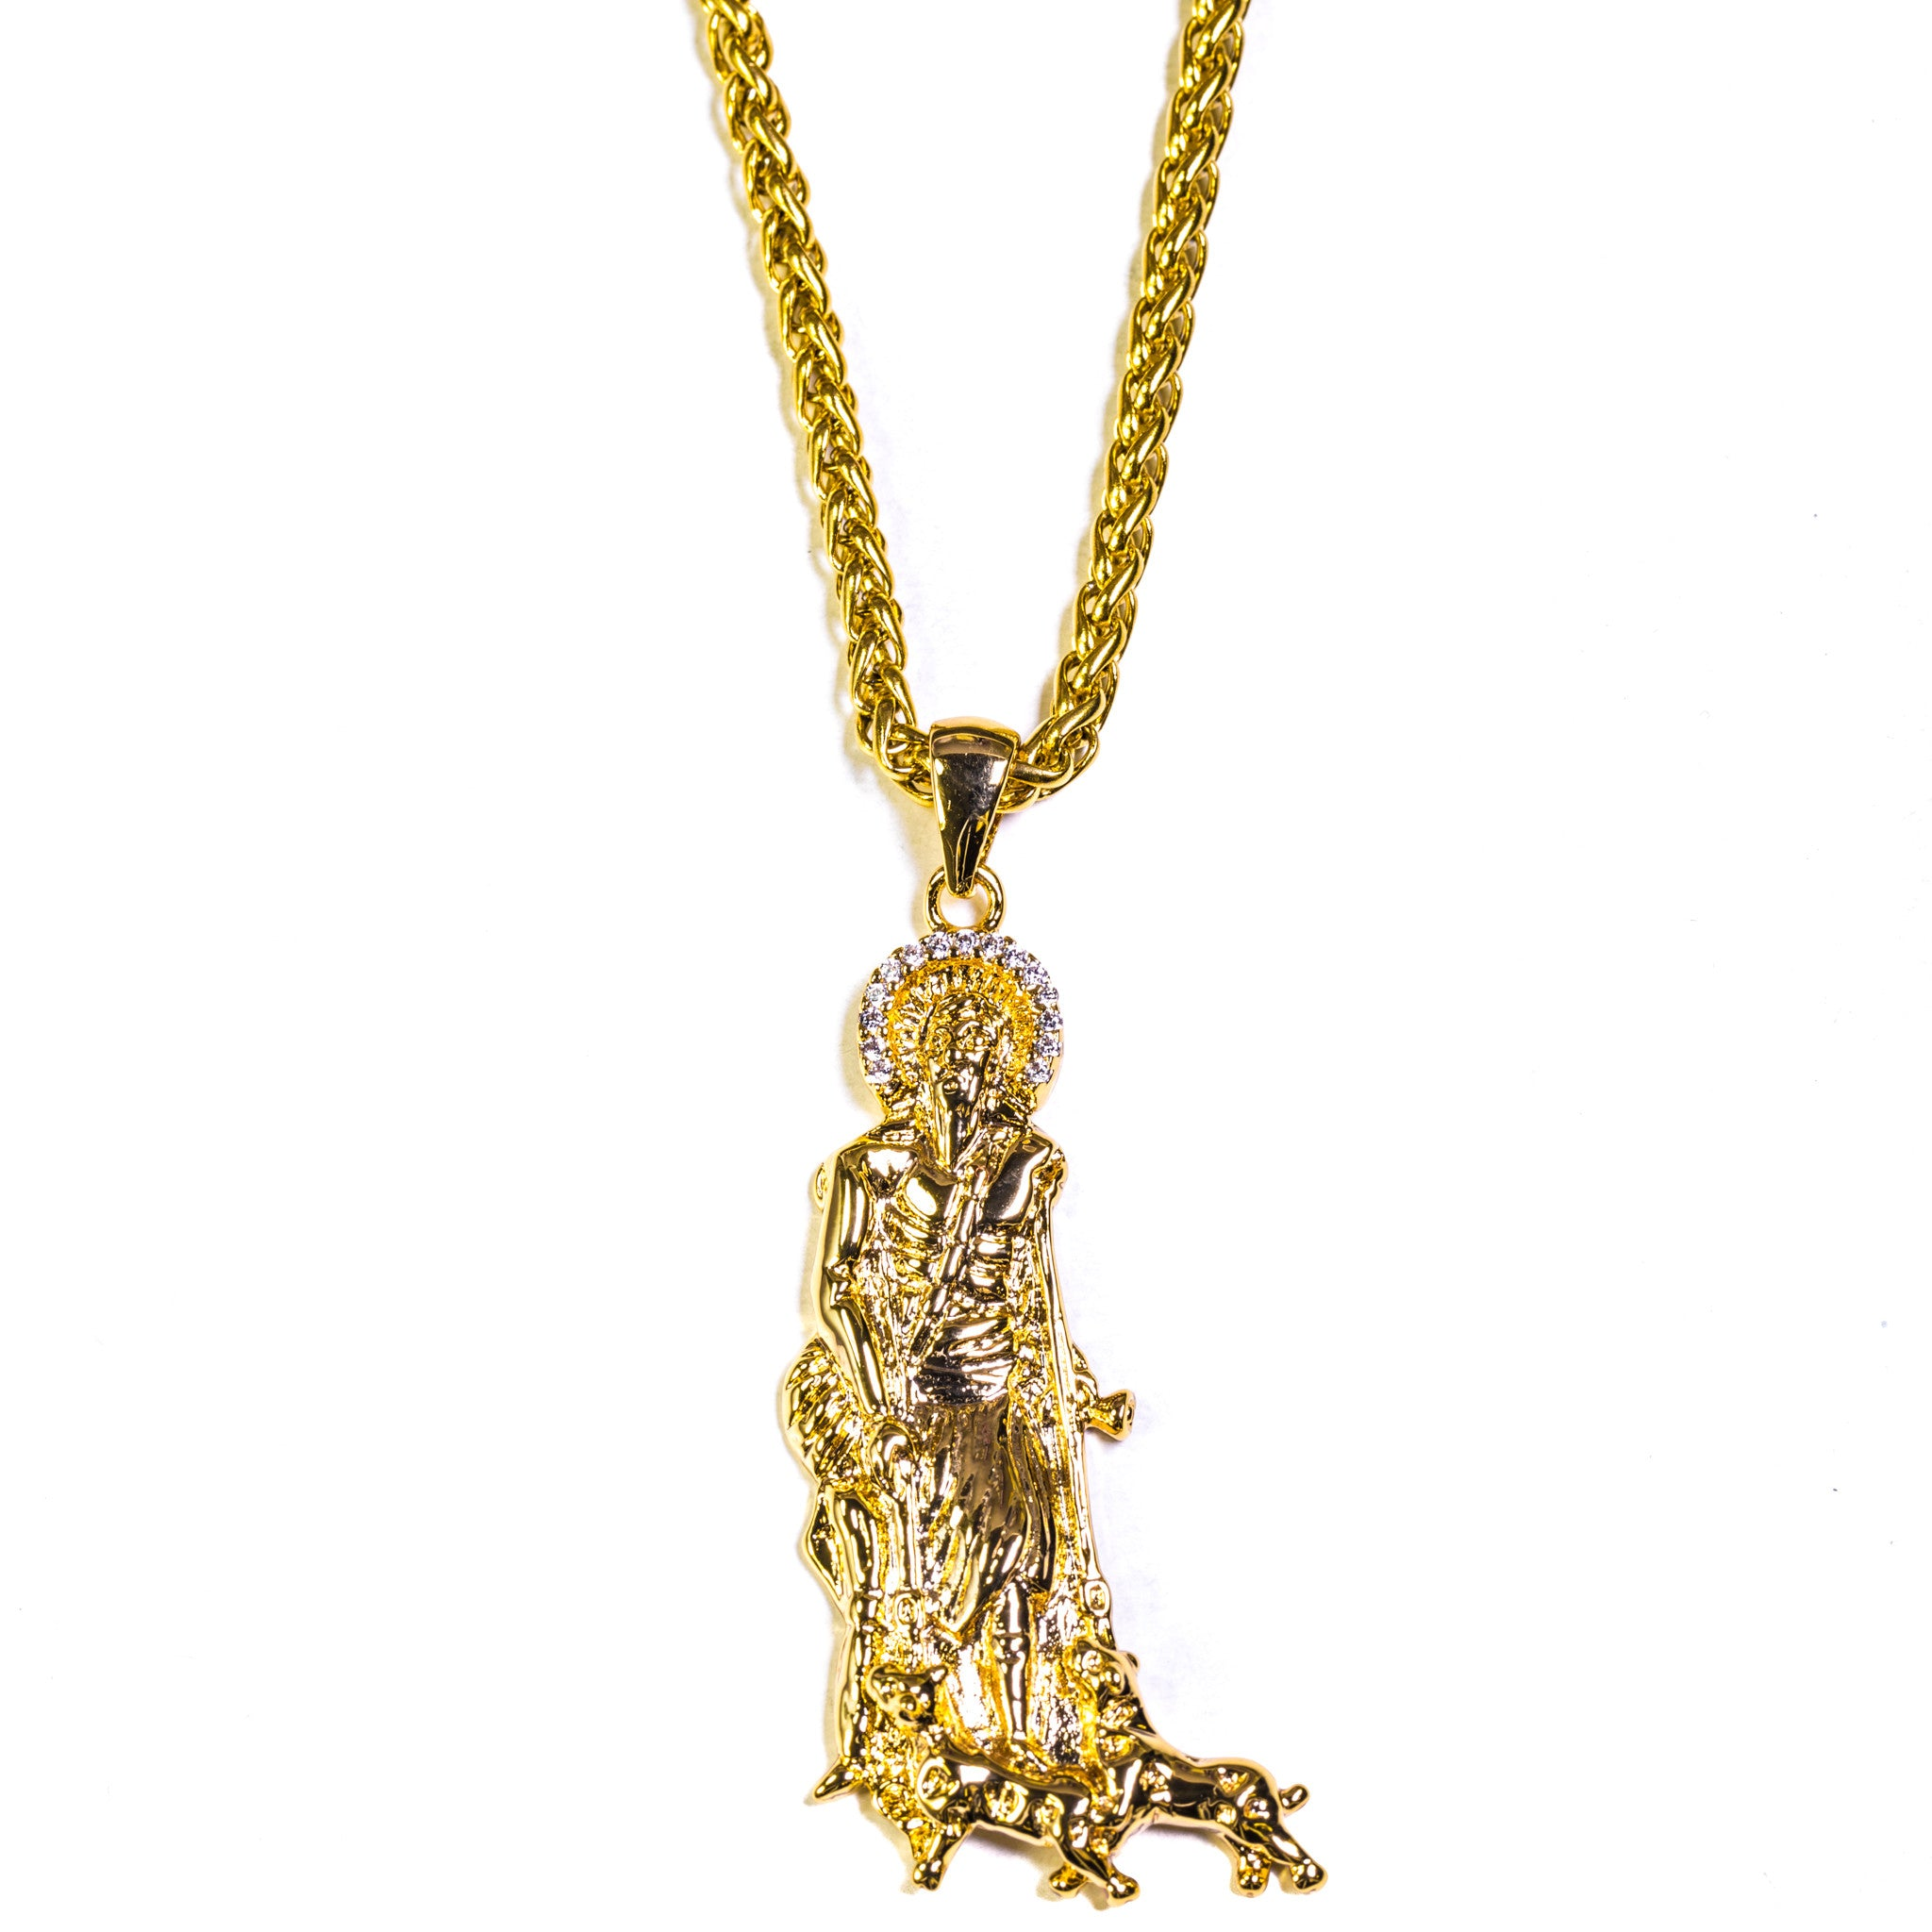 ST. LAZARUS - ACCESSORIES, Golden Gilt, SNEAKER STUDIO, GOLDEN GILT, DESIGN BY TSS